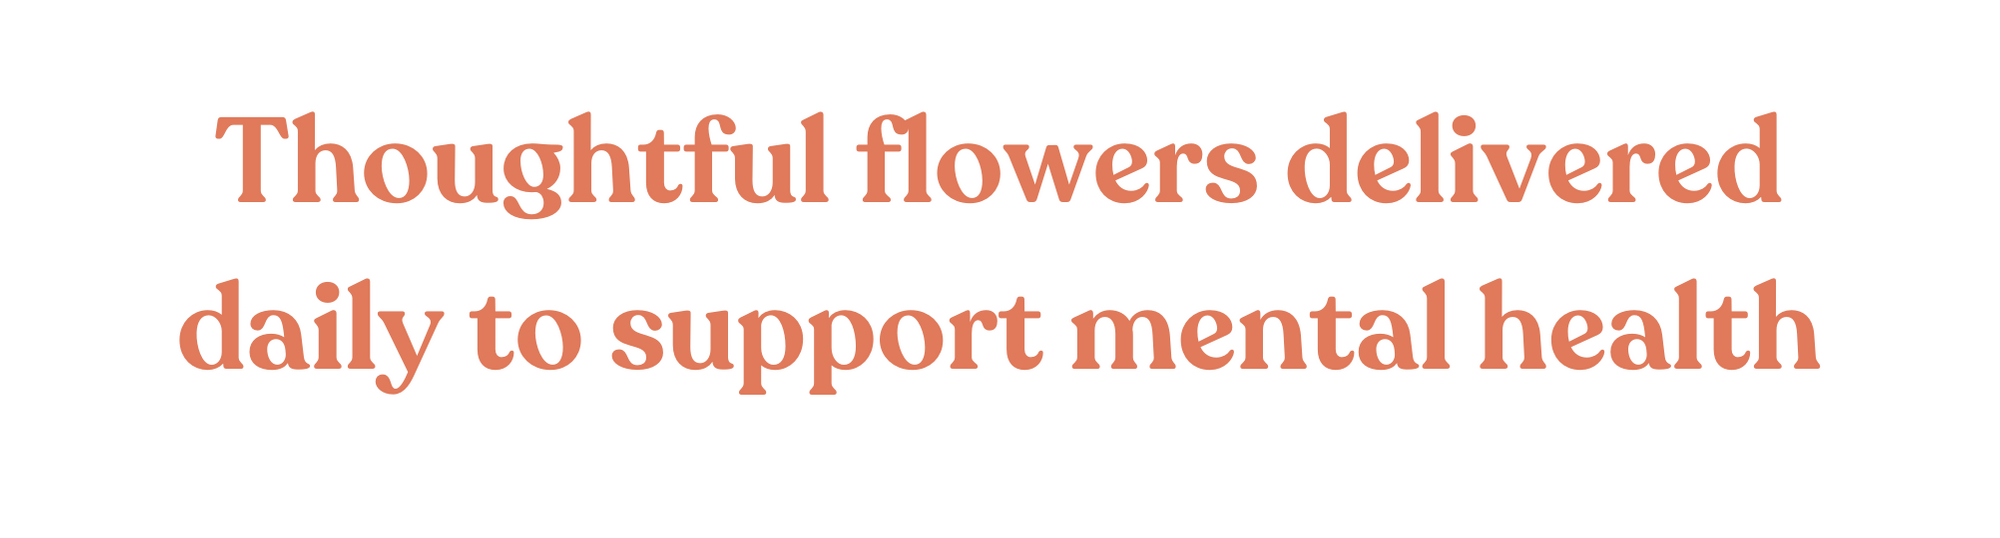 Melbourne Flower Delivery. Thoughtful flowers delivered daily to support mental health.